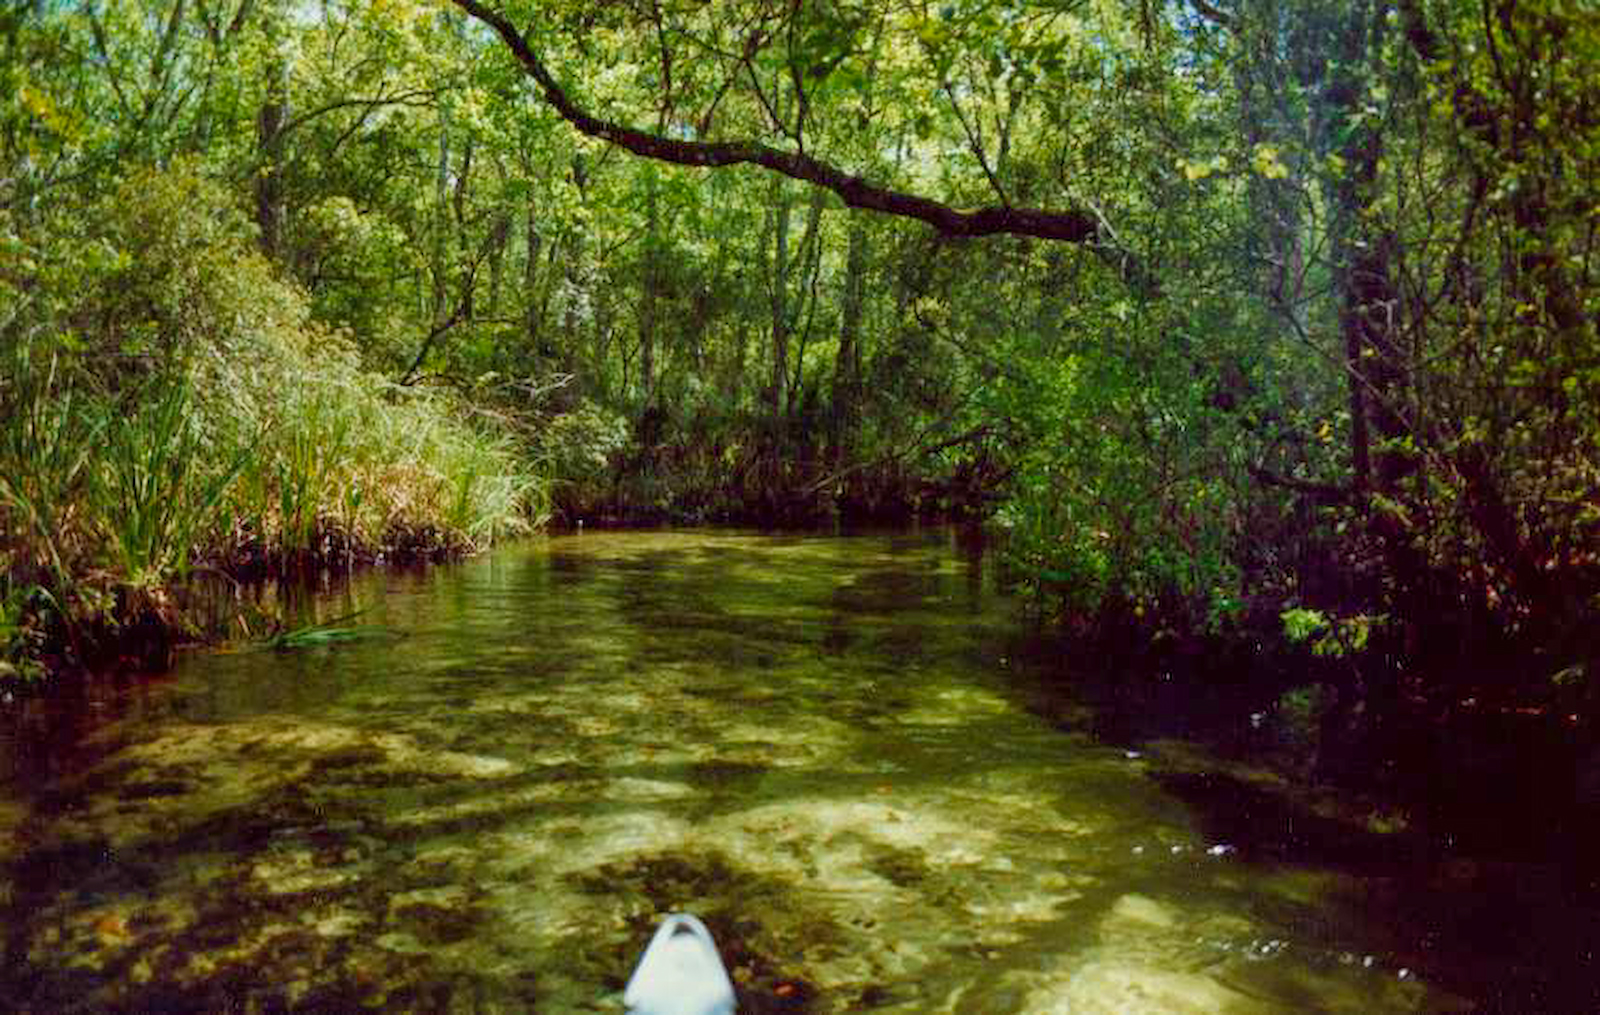 Paddling Juniper Run under dense forest canopy